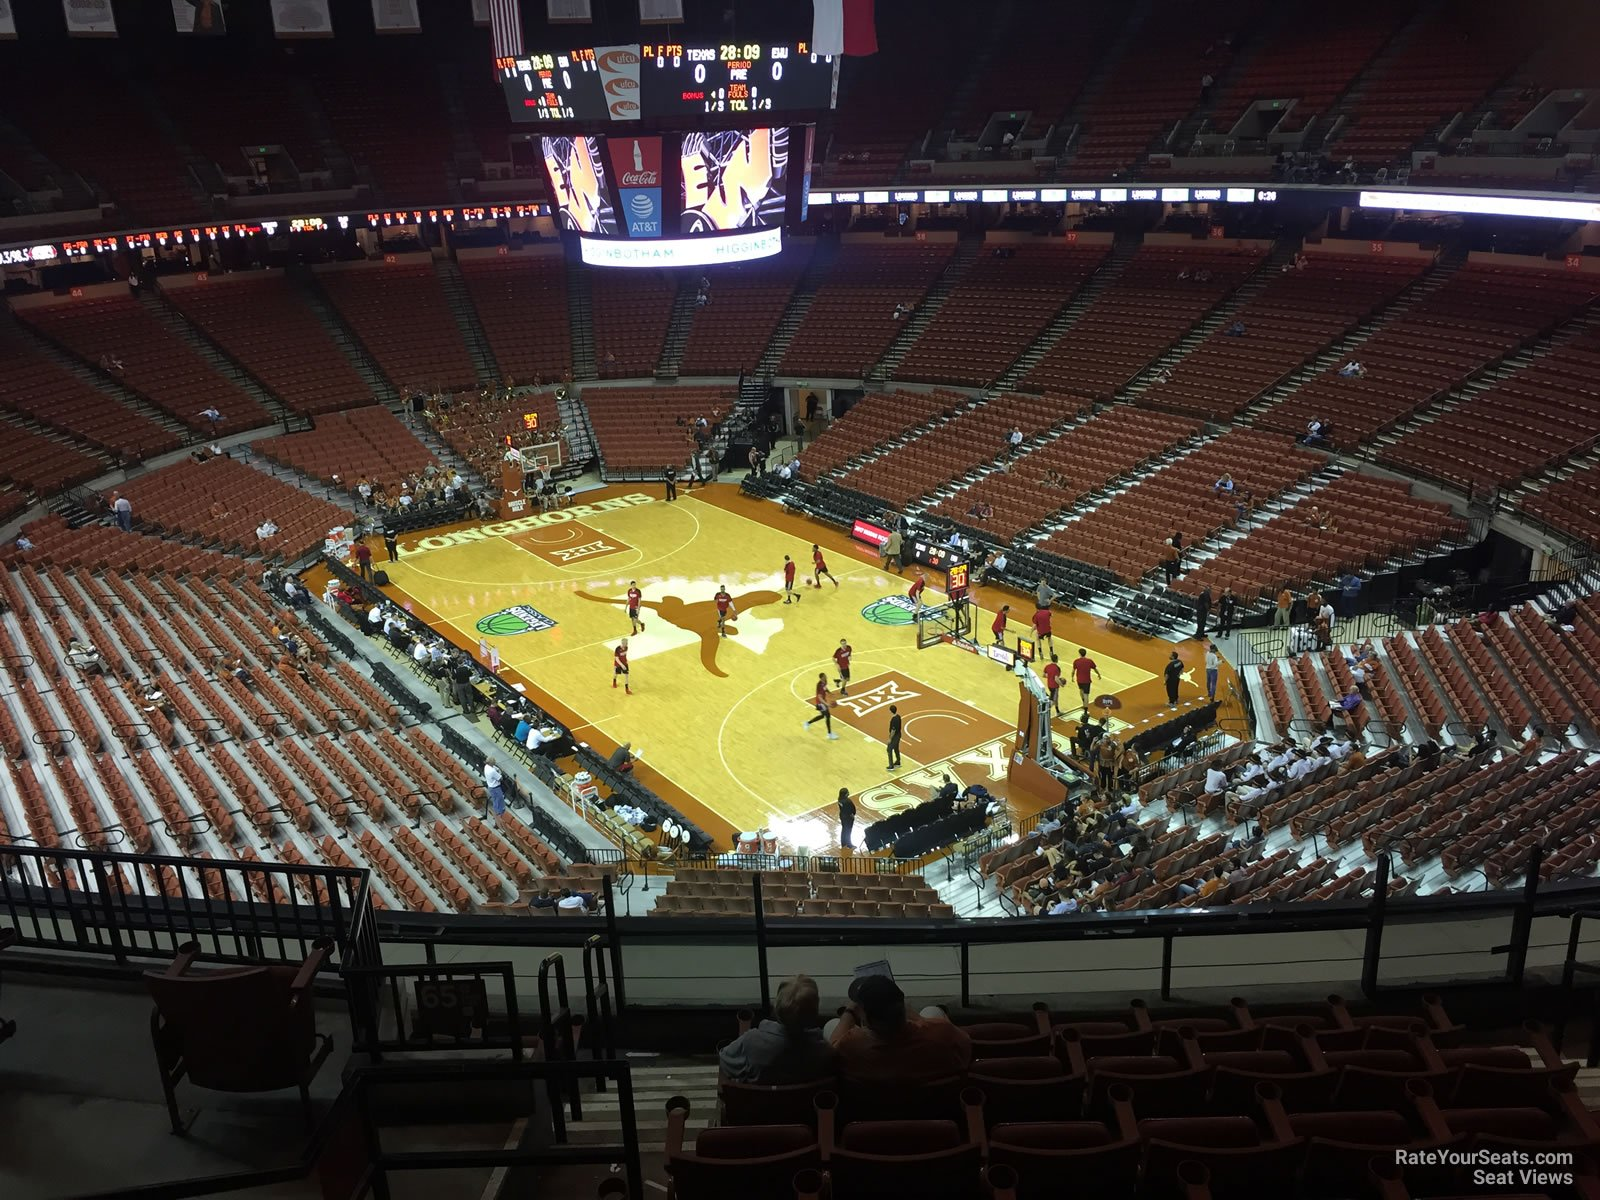 Seat View for Frank Erwin Center Section 66, Row 8